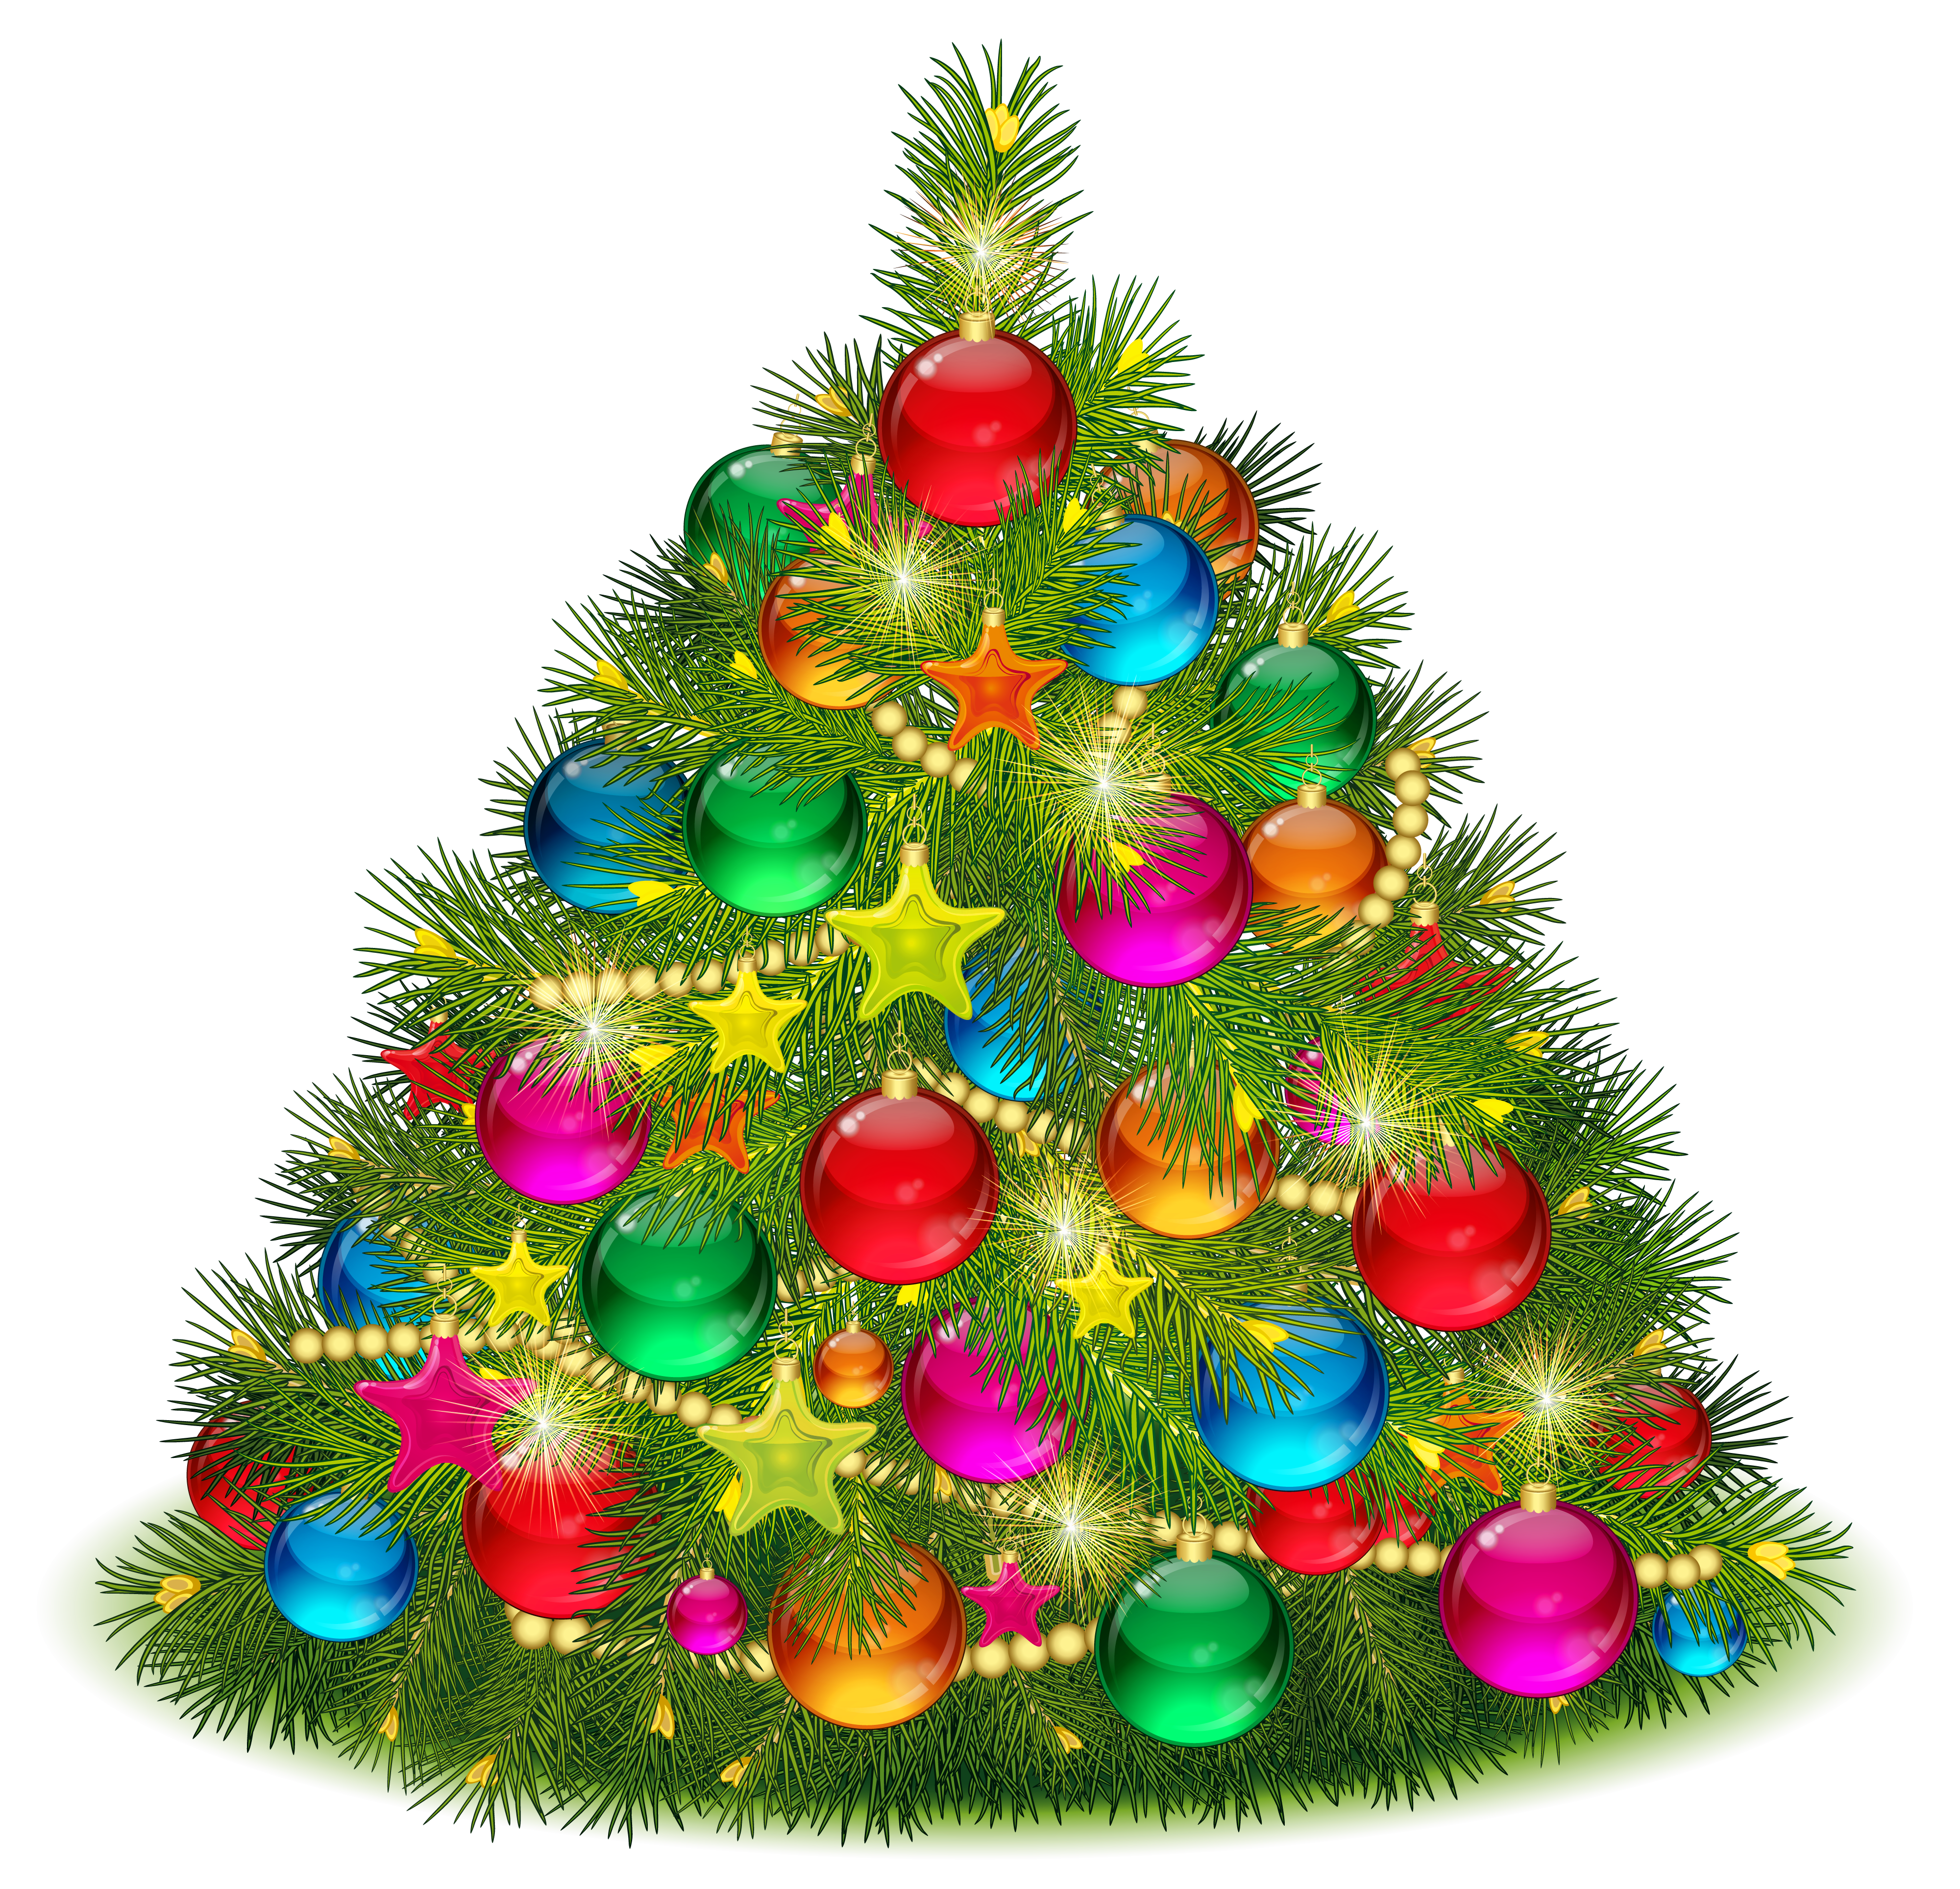 Large_Transparent_Decorated_Christmas_Tree_PNG_Clipart.png